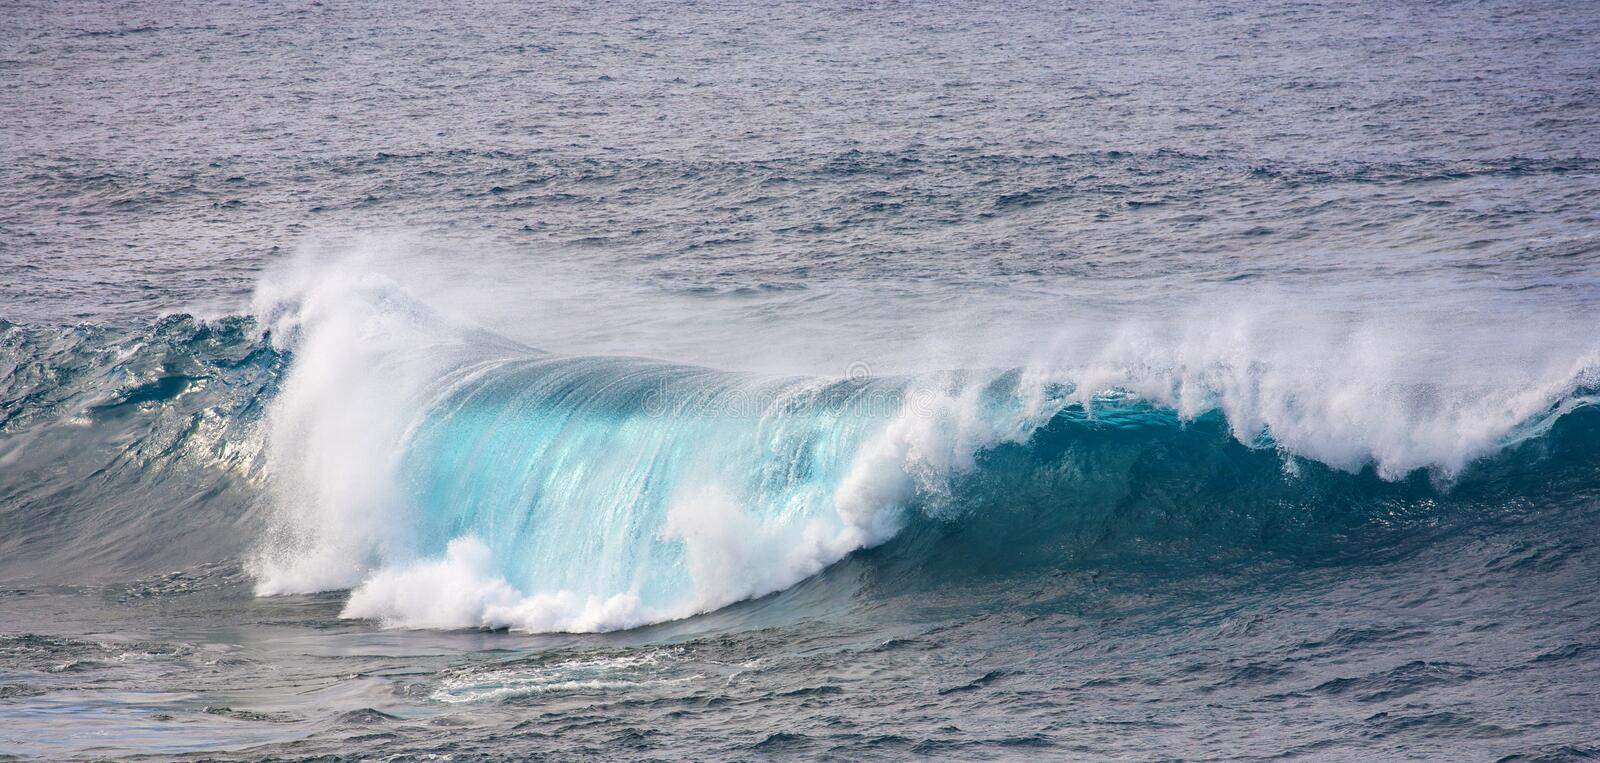 Huge waves in the ocean near Los royalty free stock photography